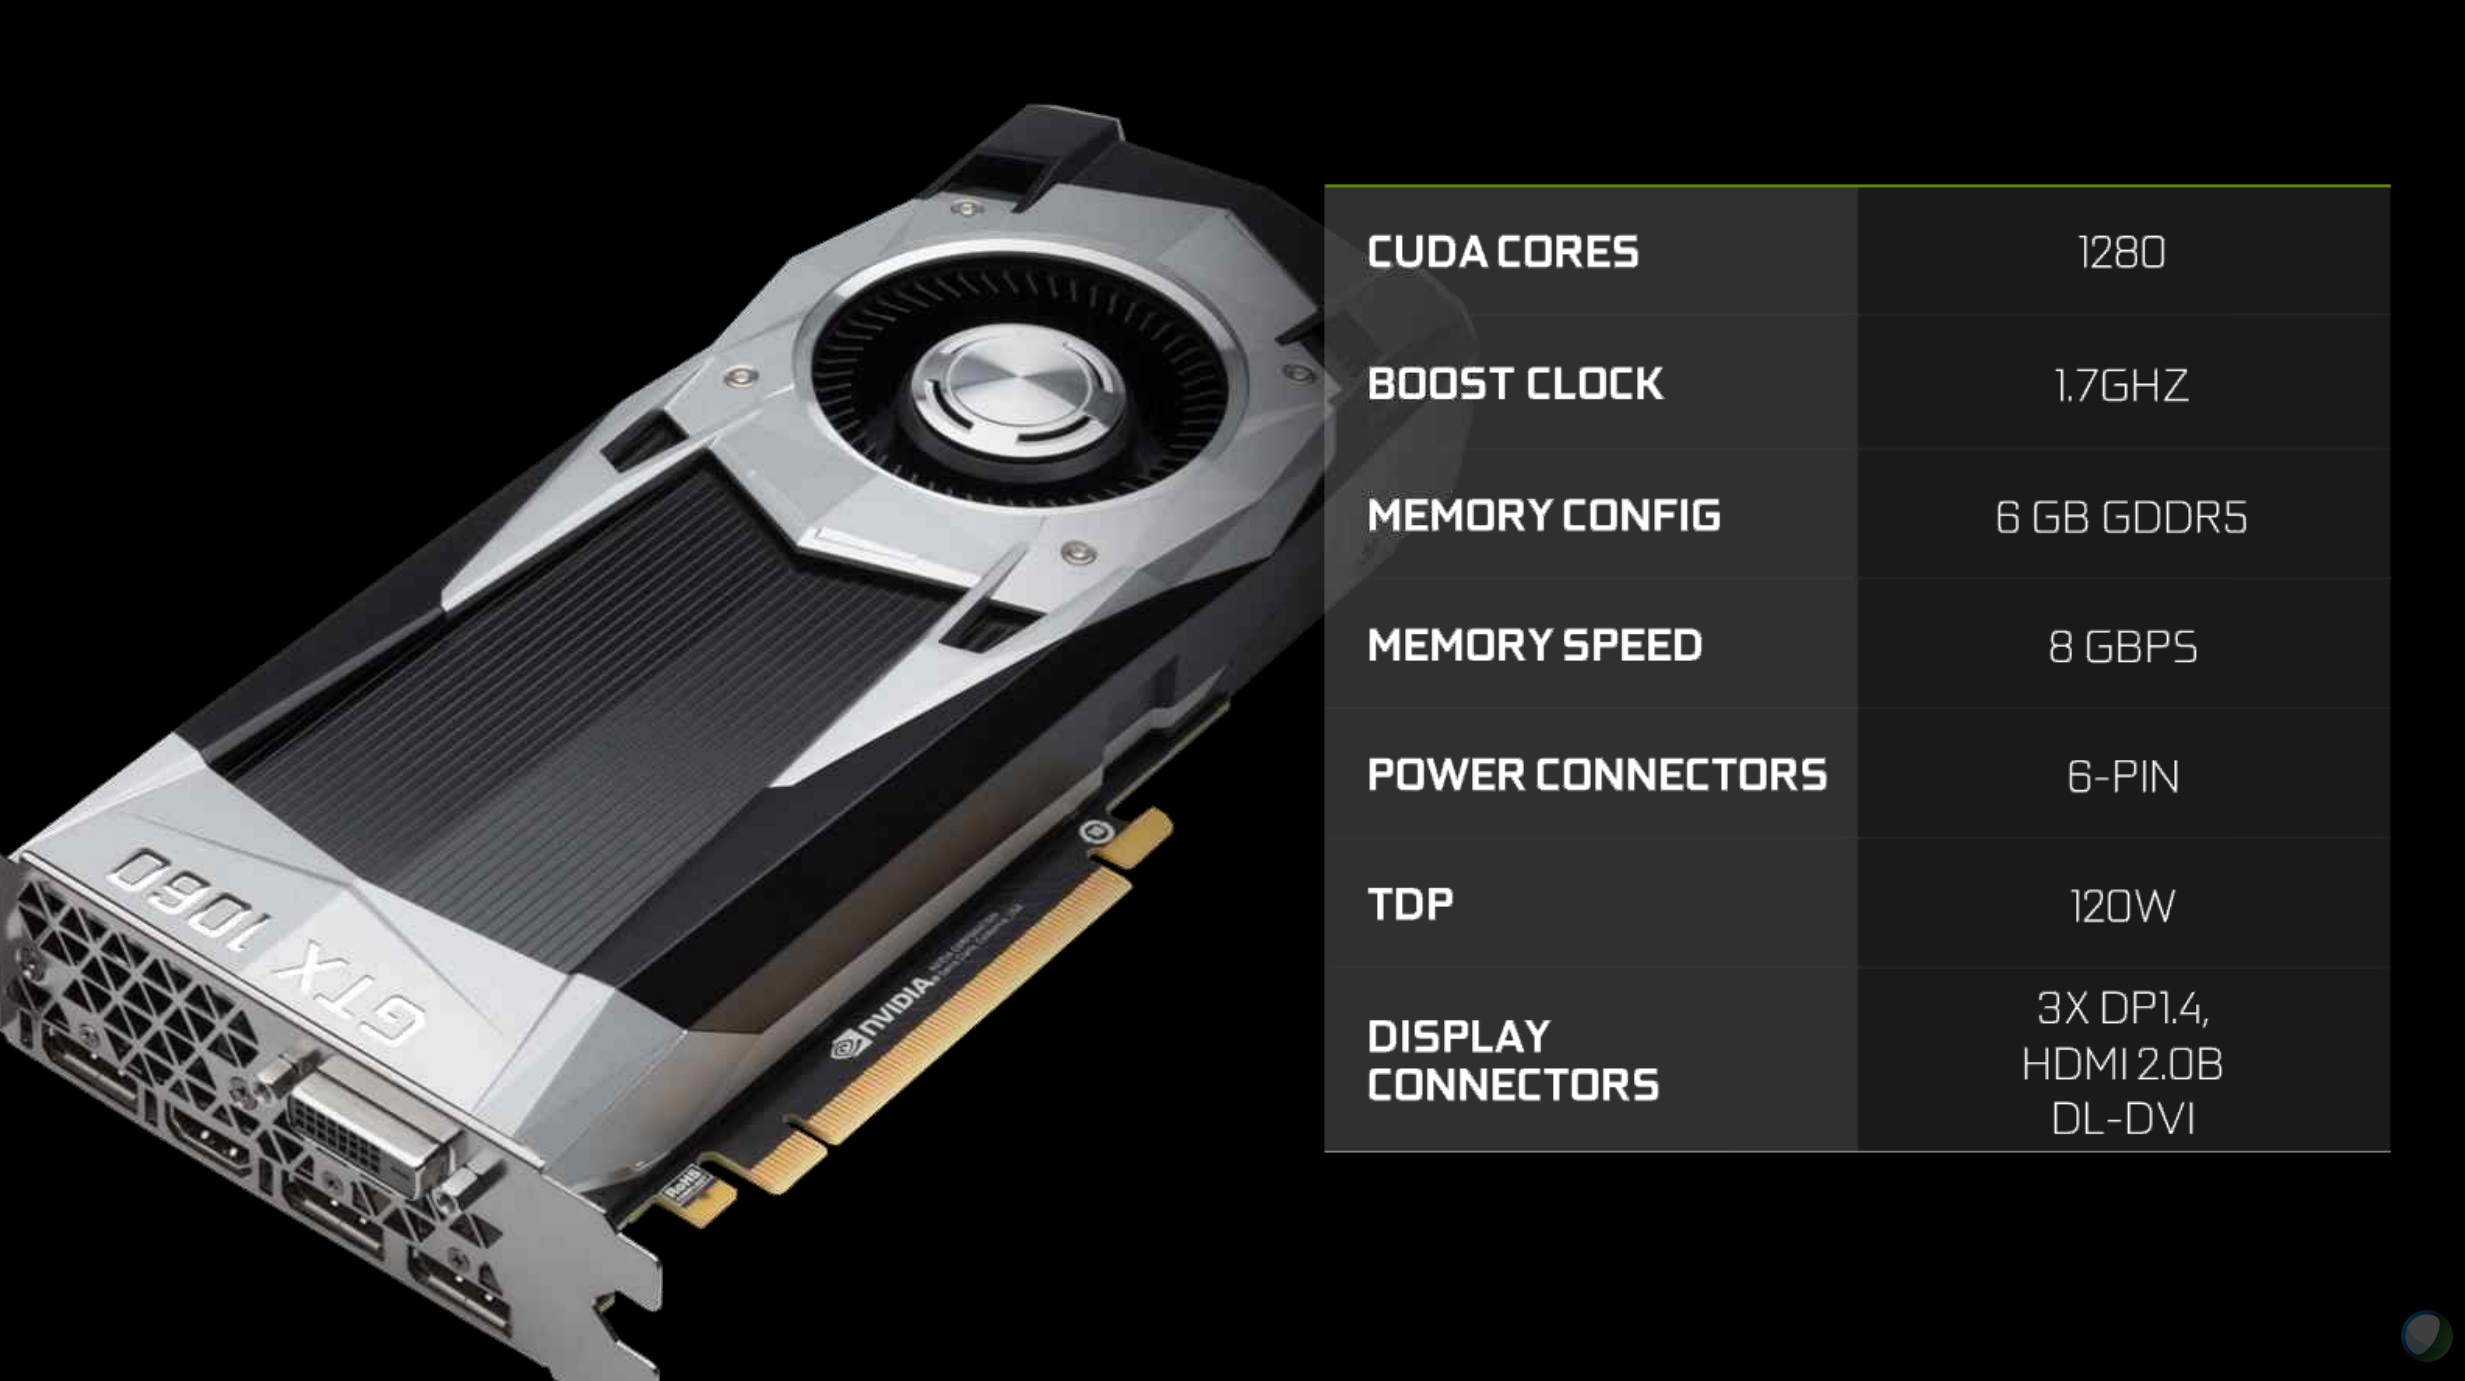 nvidia geforce gtx 1060 1